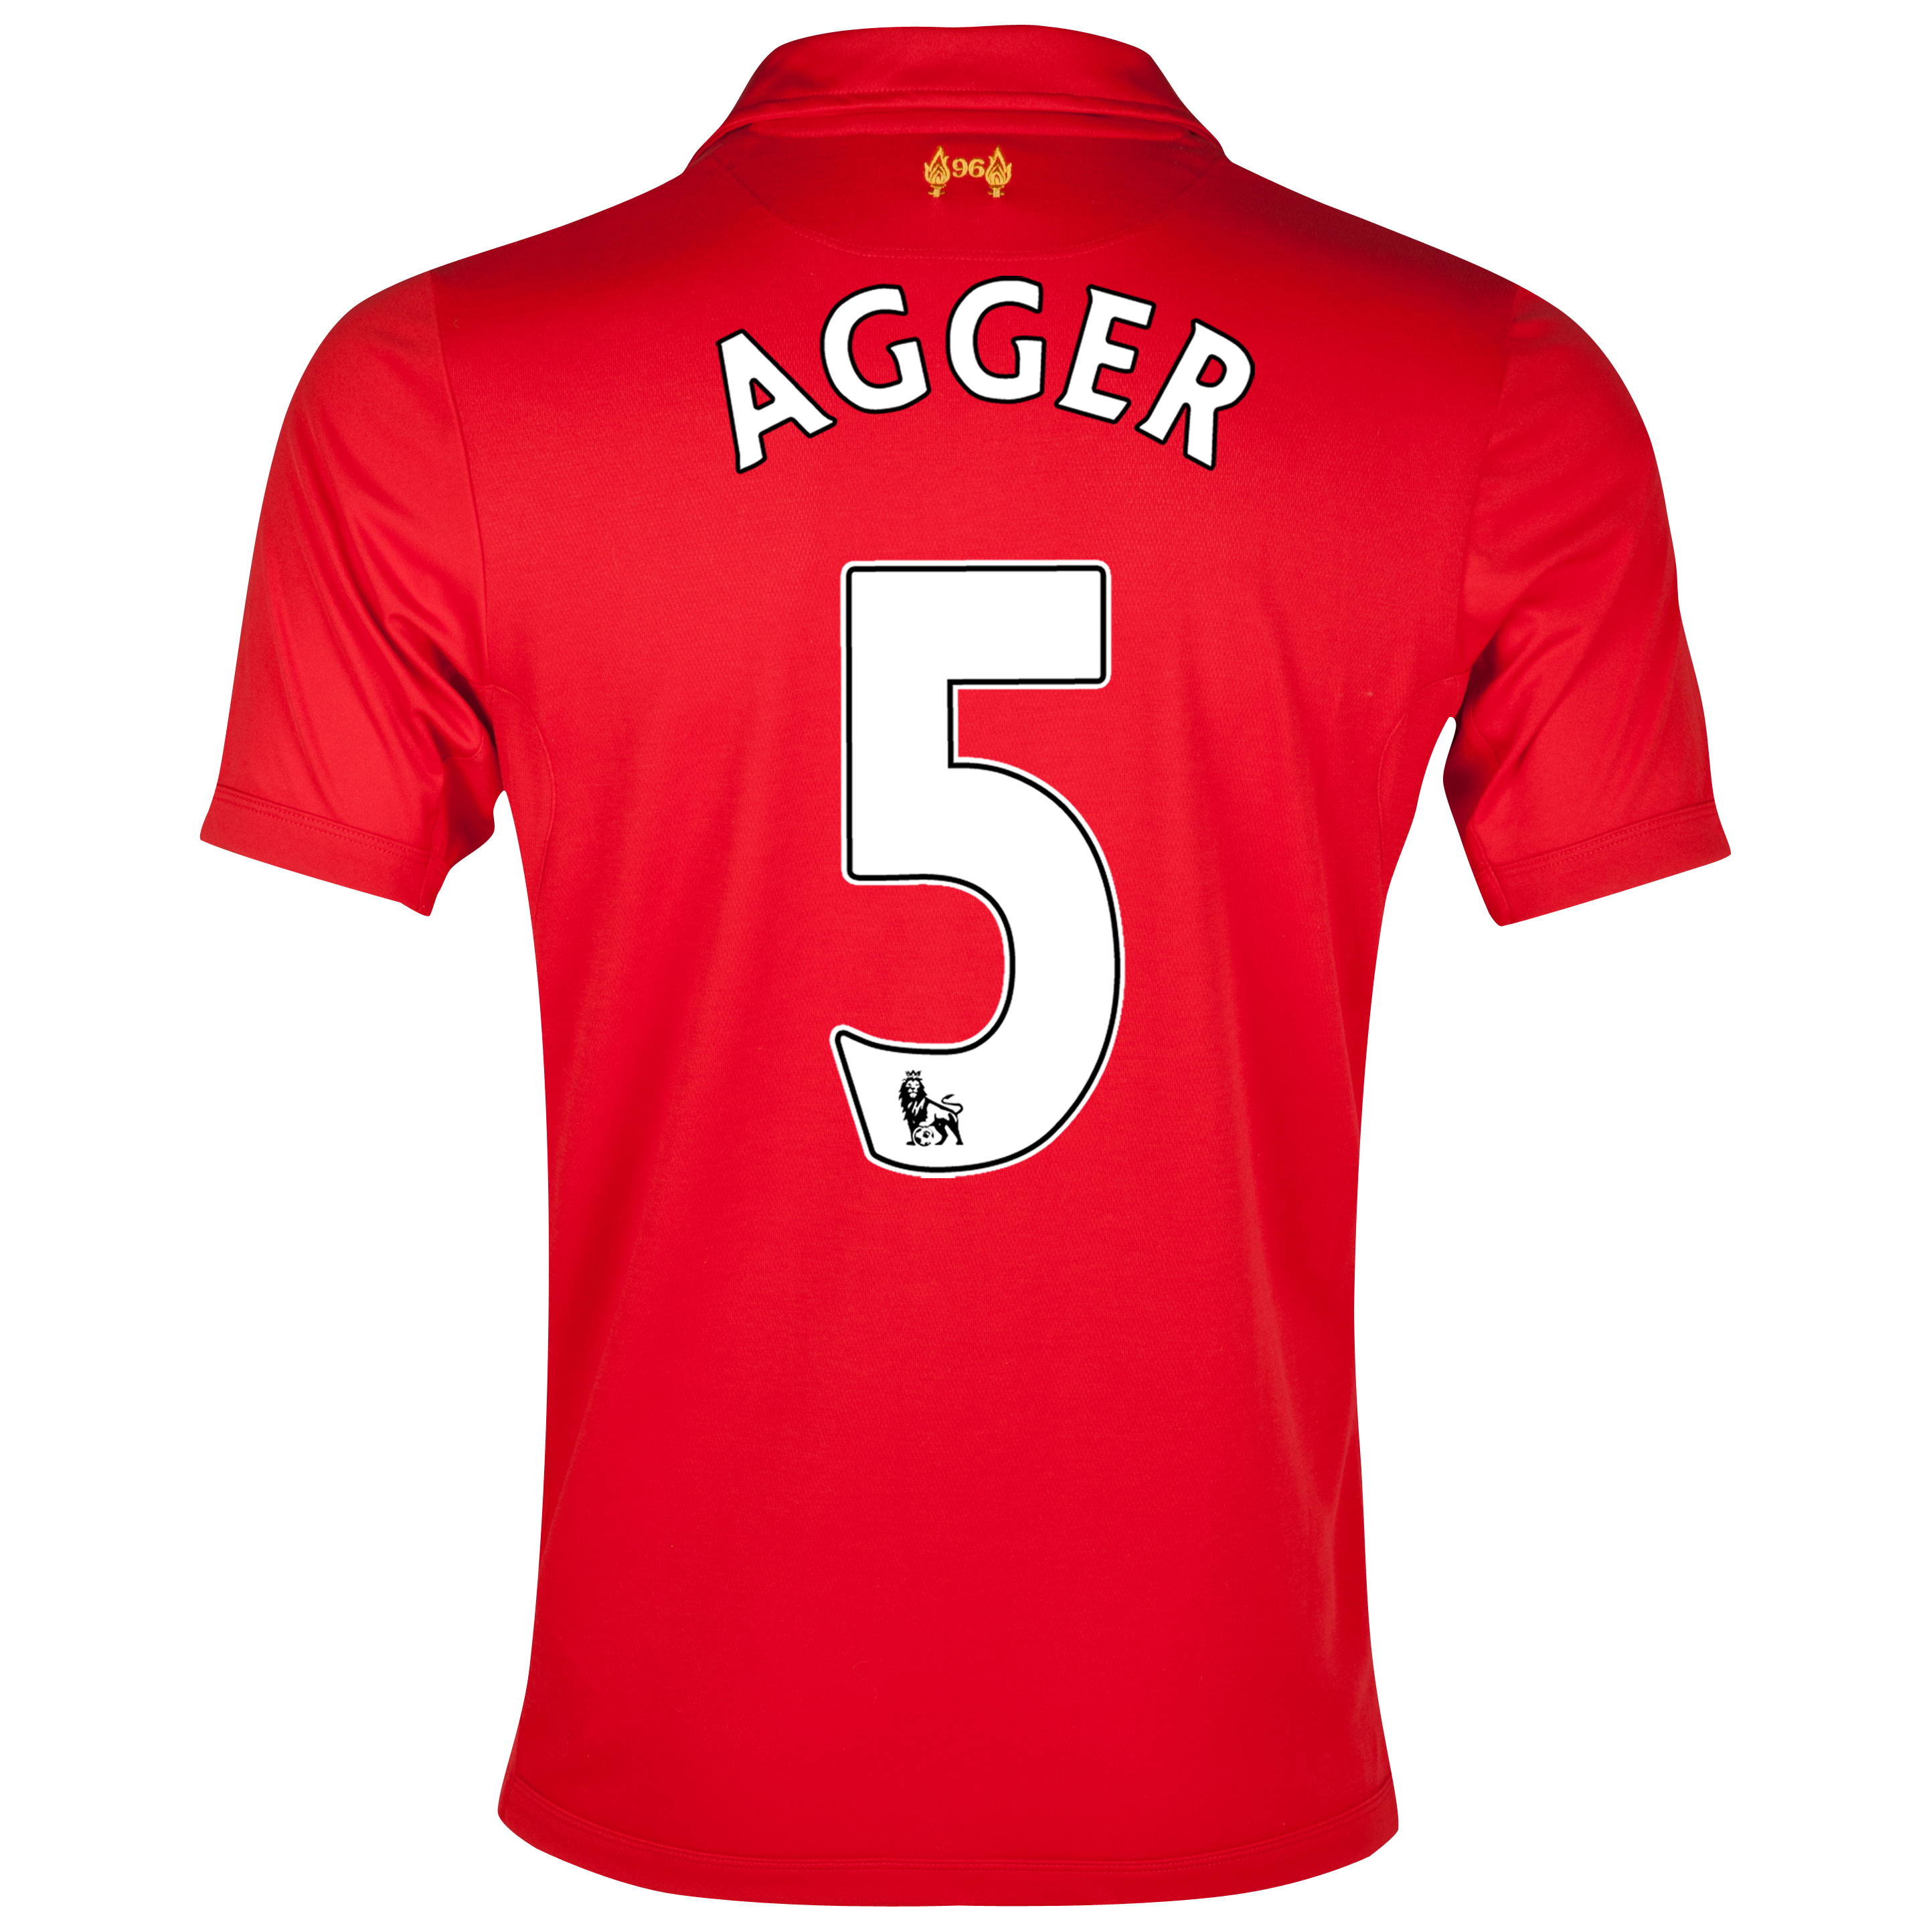 Liverpool Home Shirt 2012/13 - Kids with Agger 5 printing